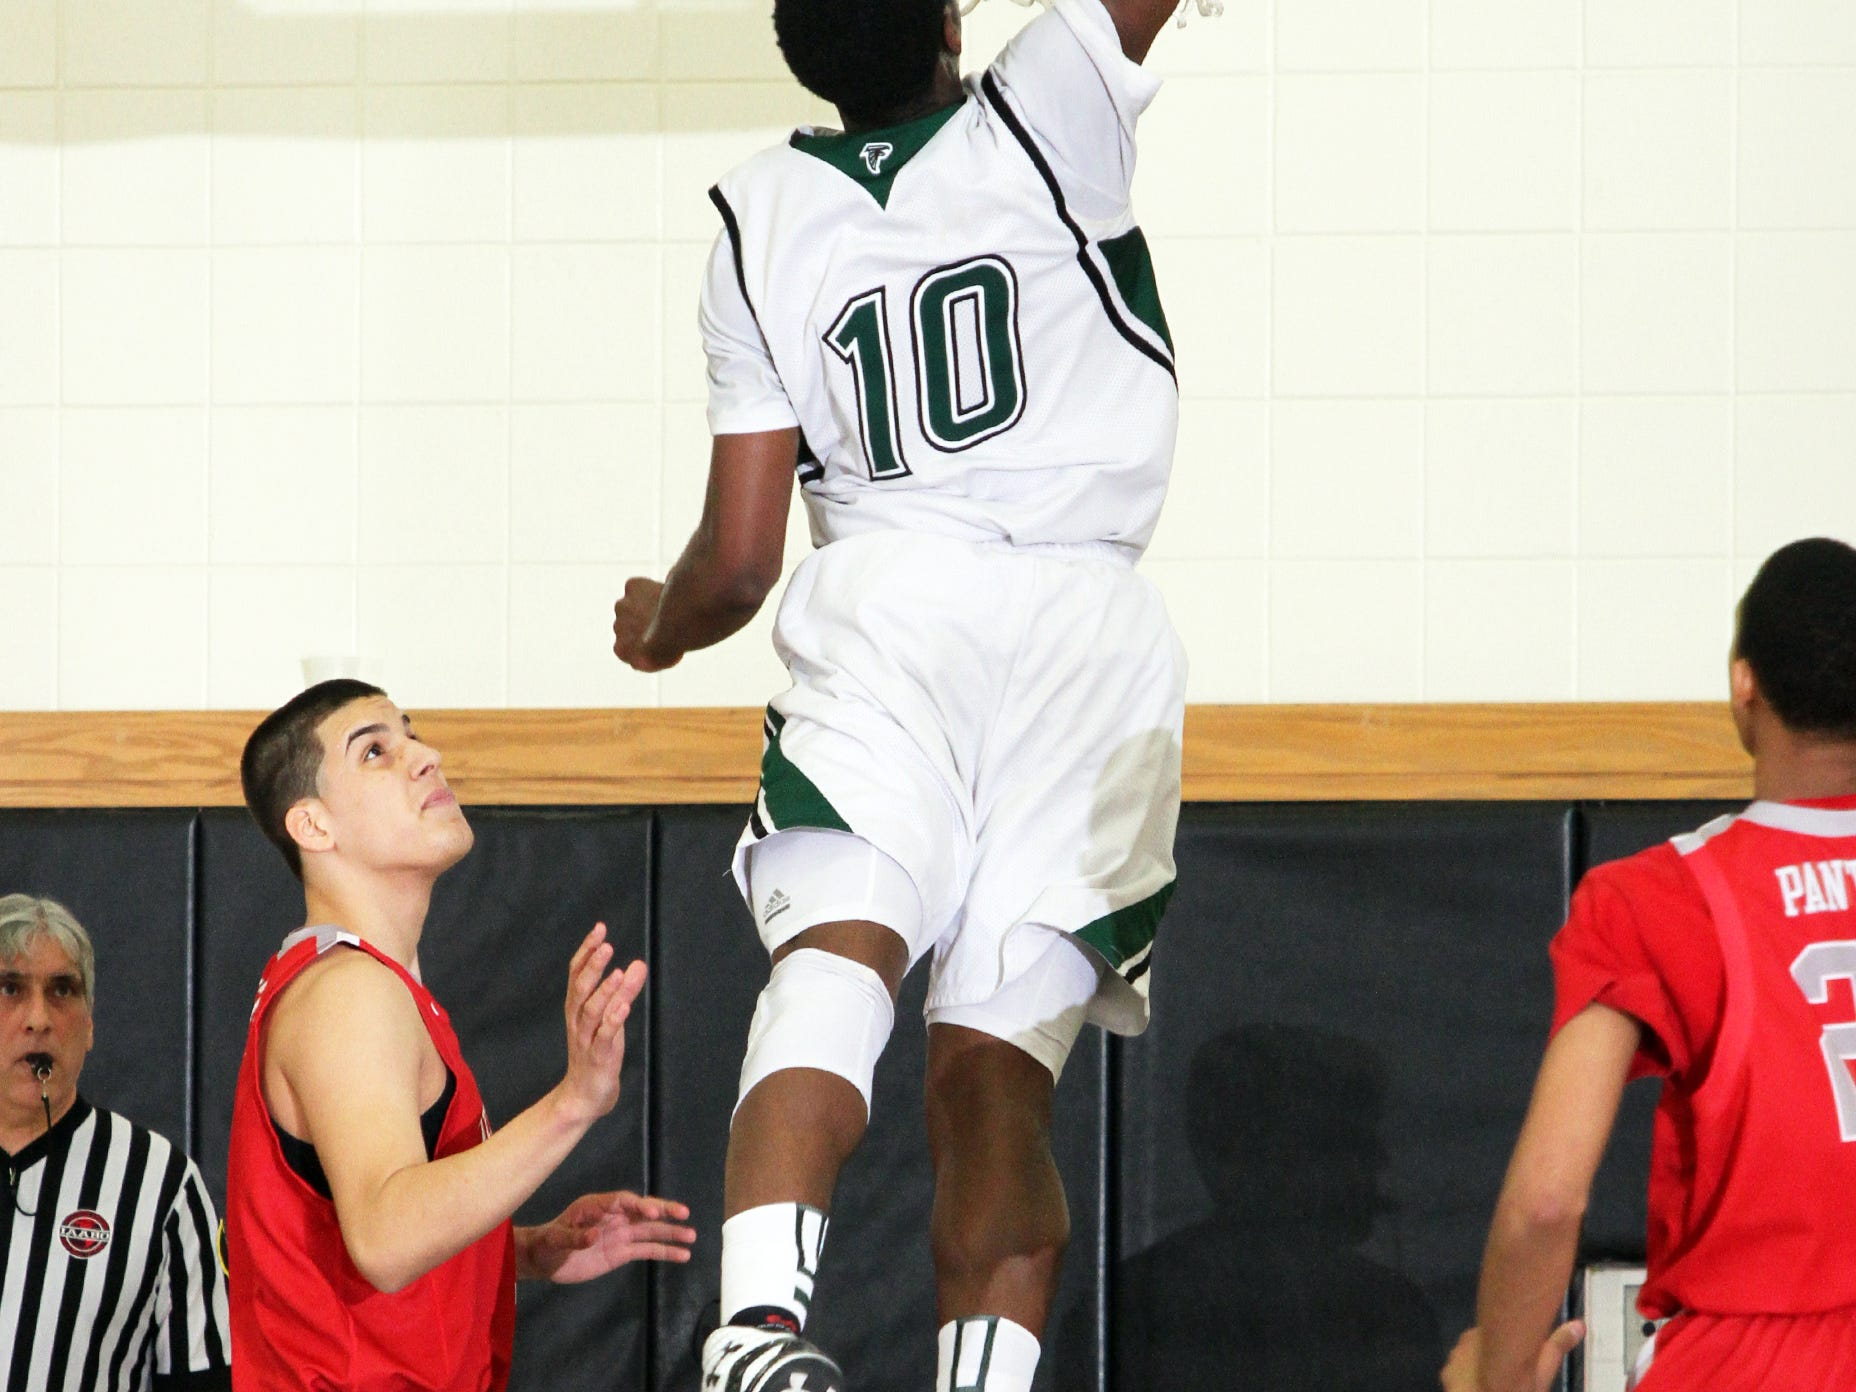 2015 Boys GMC basketball semi finals held at South Brunswick high school in South Brunswick on Tuesday February 24,2015. Perth Amboy takes on St. Joseph's of Metuchen. Here St. Joseph's # 10- Marcus Ashamole goes for the put back dunk during the 1st half of play.